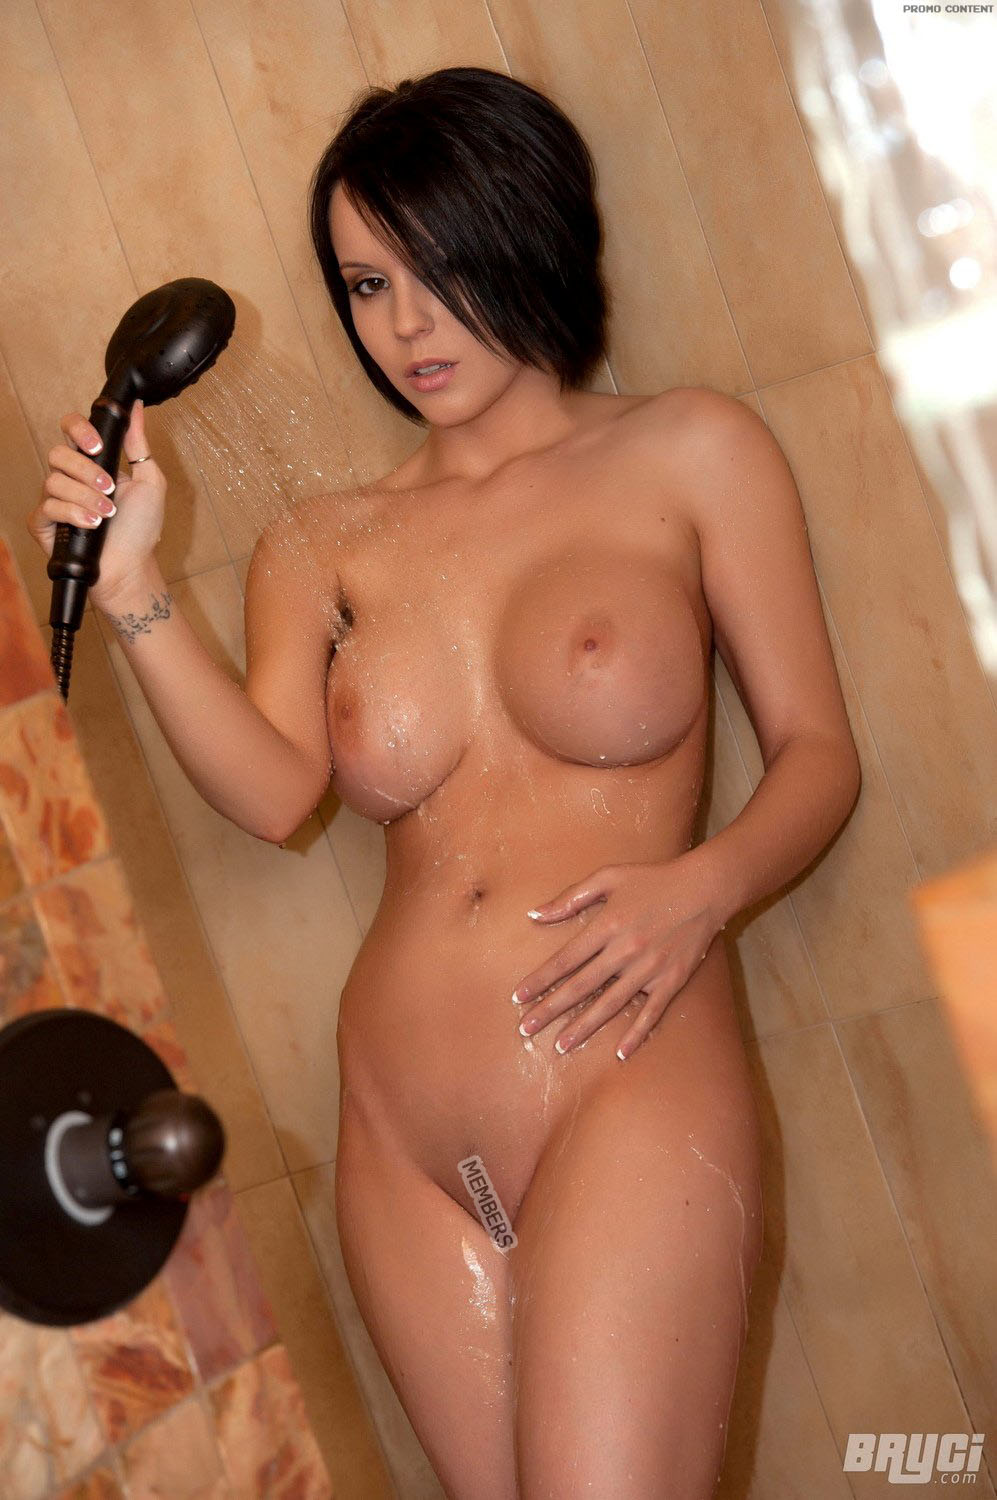 Shower in women the sexy nude